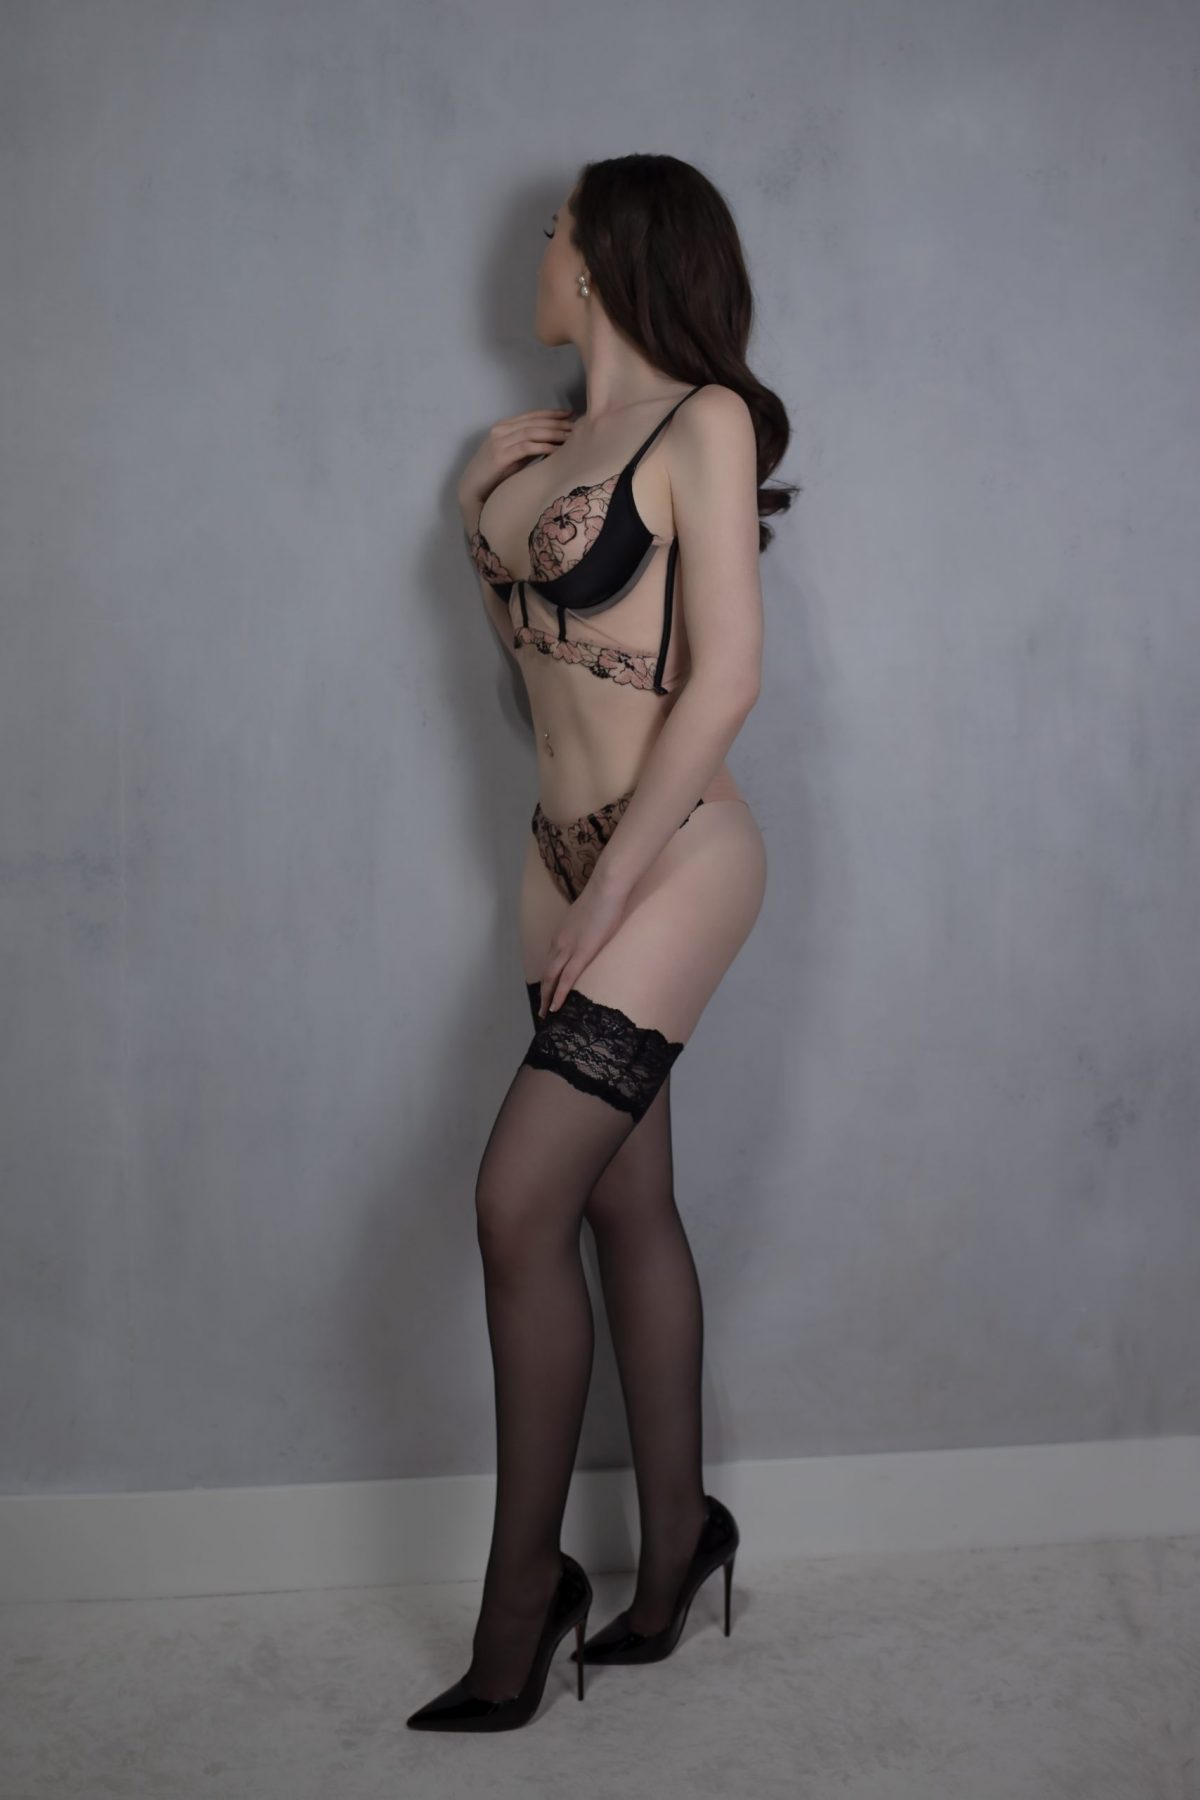 Toronto escorts companion upscale Fiona Interests Duo Couple-friendly Non-smoking Age Mature Figure Slender Tall Breasts Enhanced Hair Brunette Ethnicity European Tattoos Large Arrival New Photos New